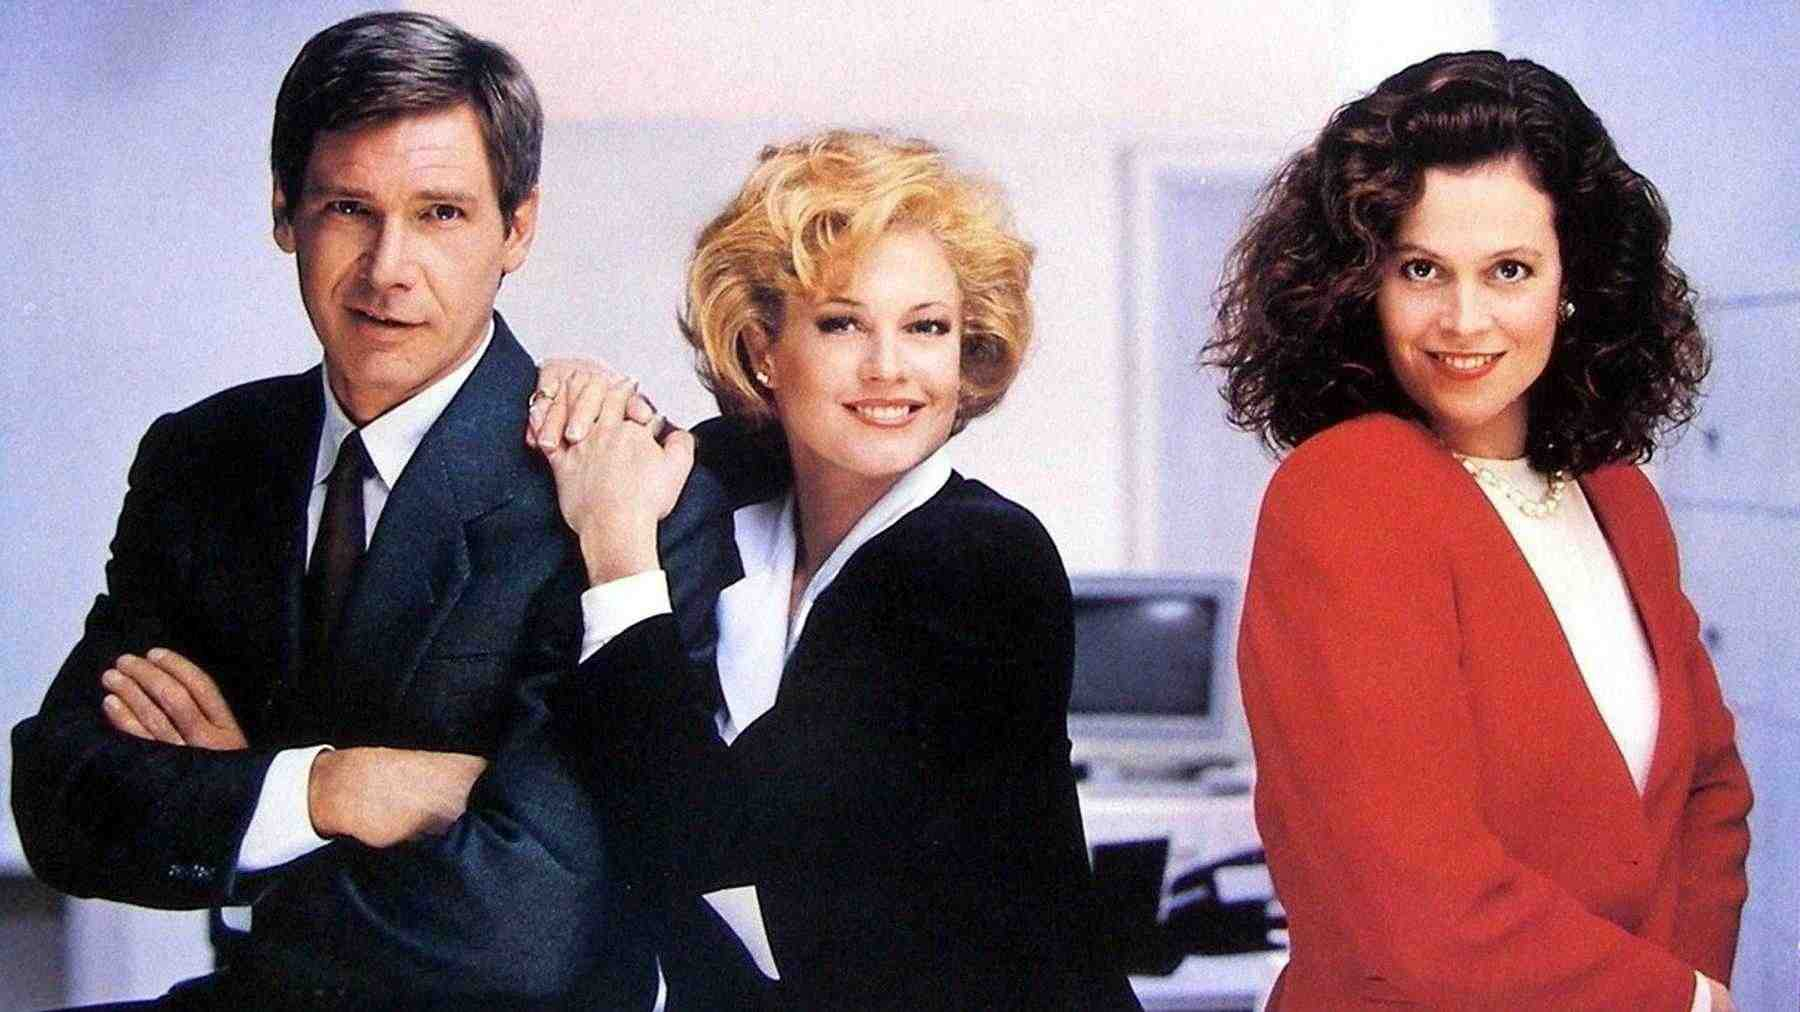 working girl comedii de dragoste anii 80